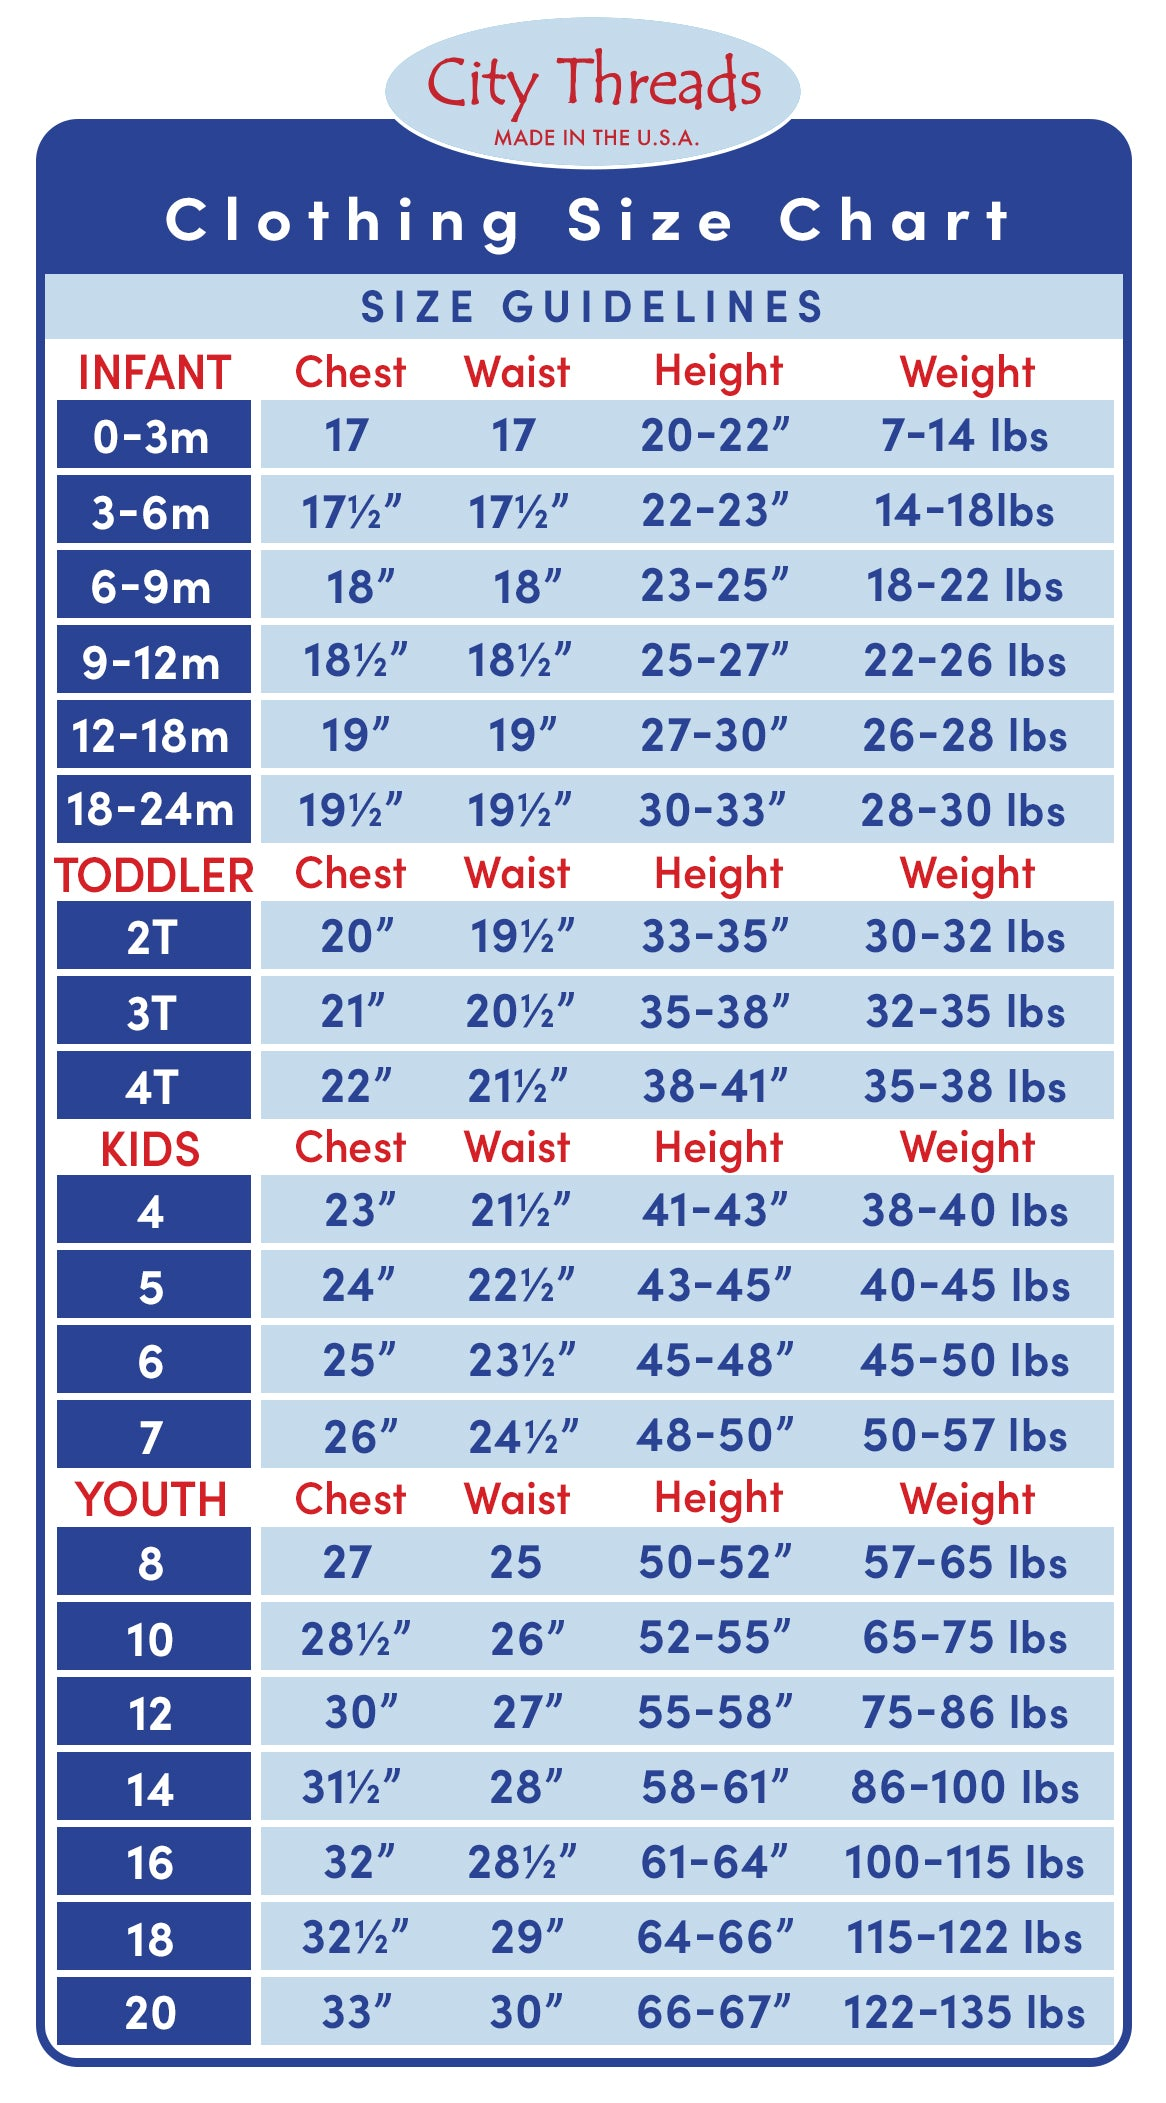 Sizing chart for kids - tops & bottoms